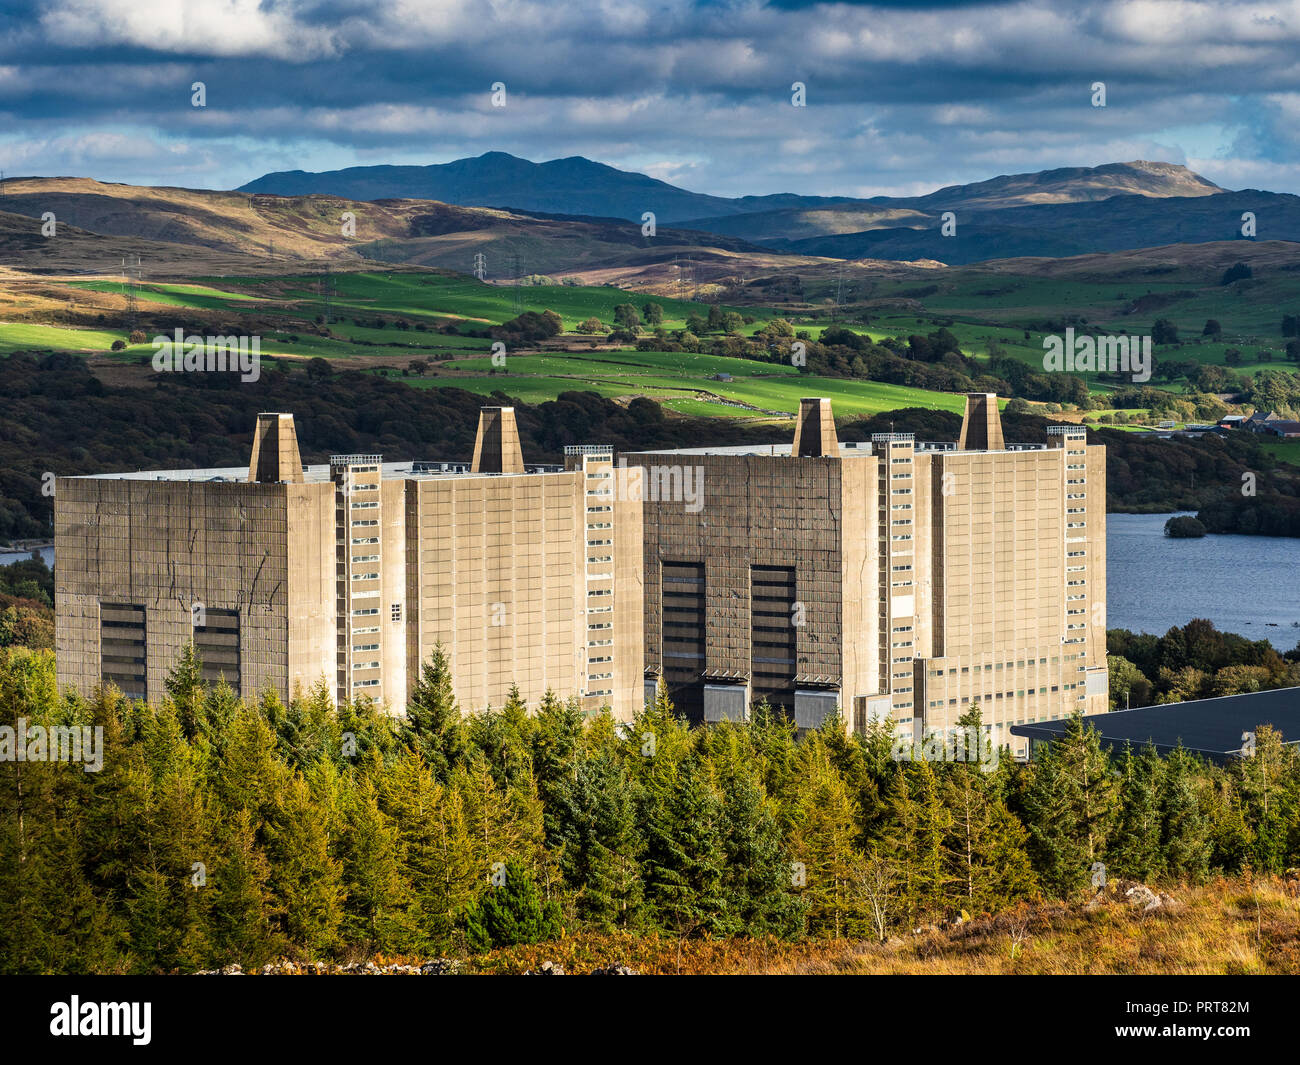 Trawsfynydd nuclear power station, designed by Basil Spence, Magnox power station opened 1965, closed 1991, being decommissioned, completion due 2083 - Stock Image